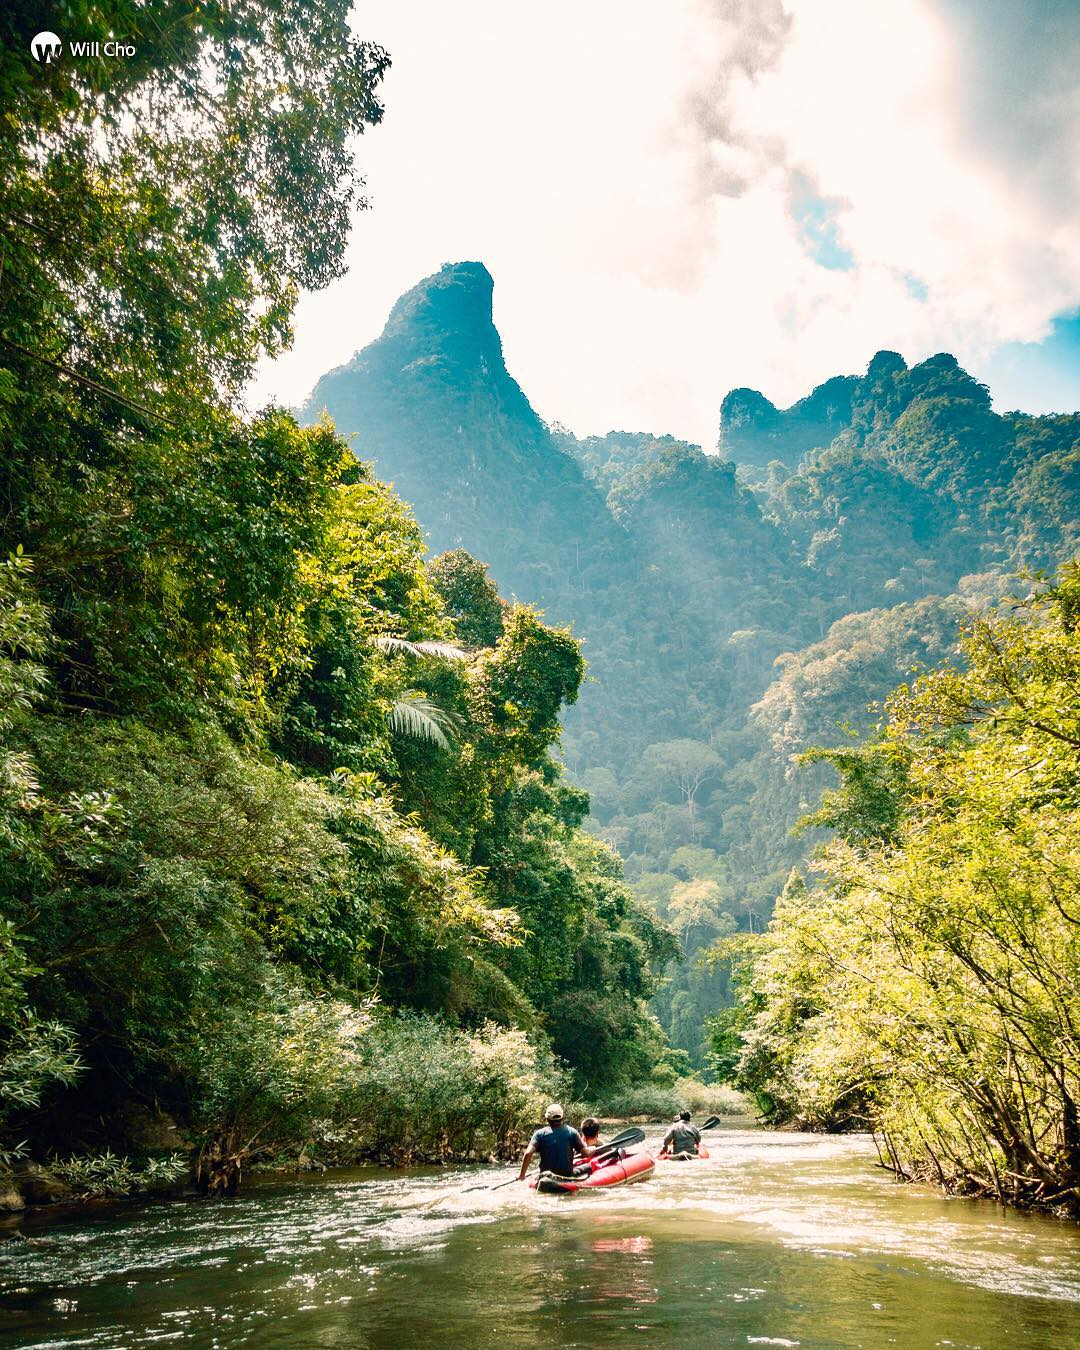 Canoeing on the River Sok in Khao Sok National Park